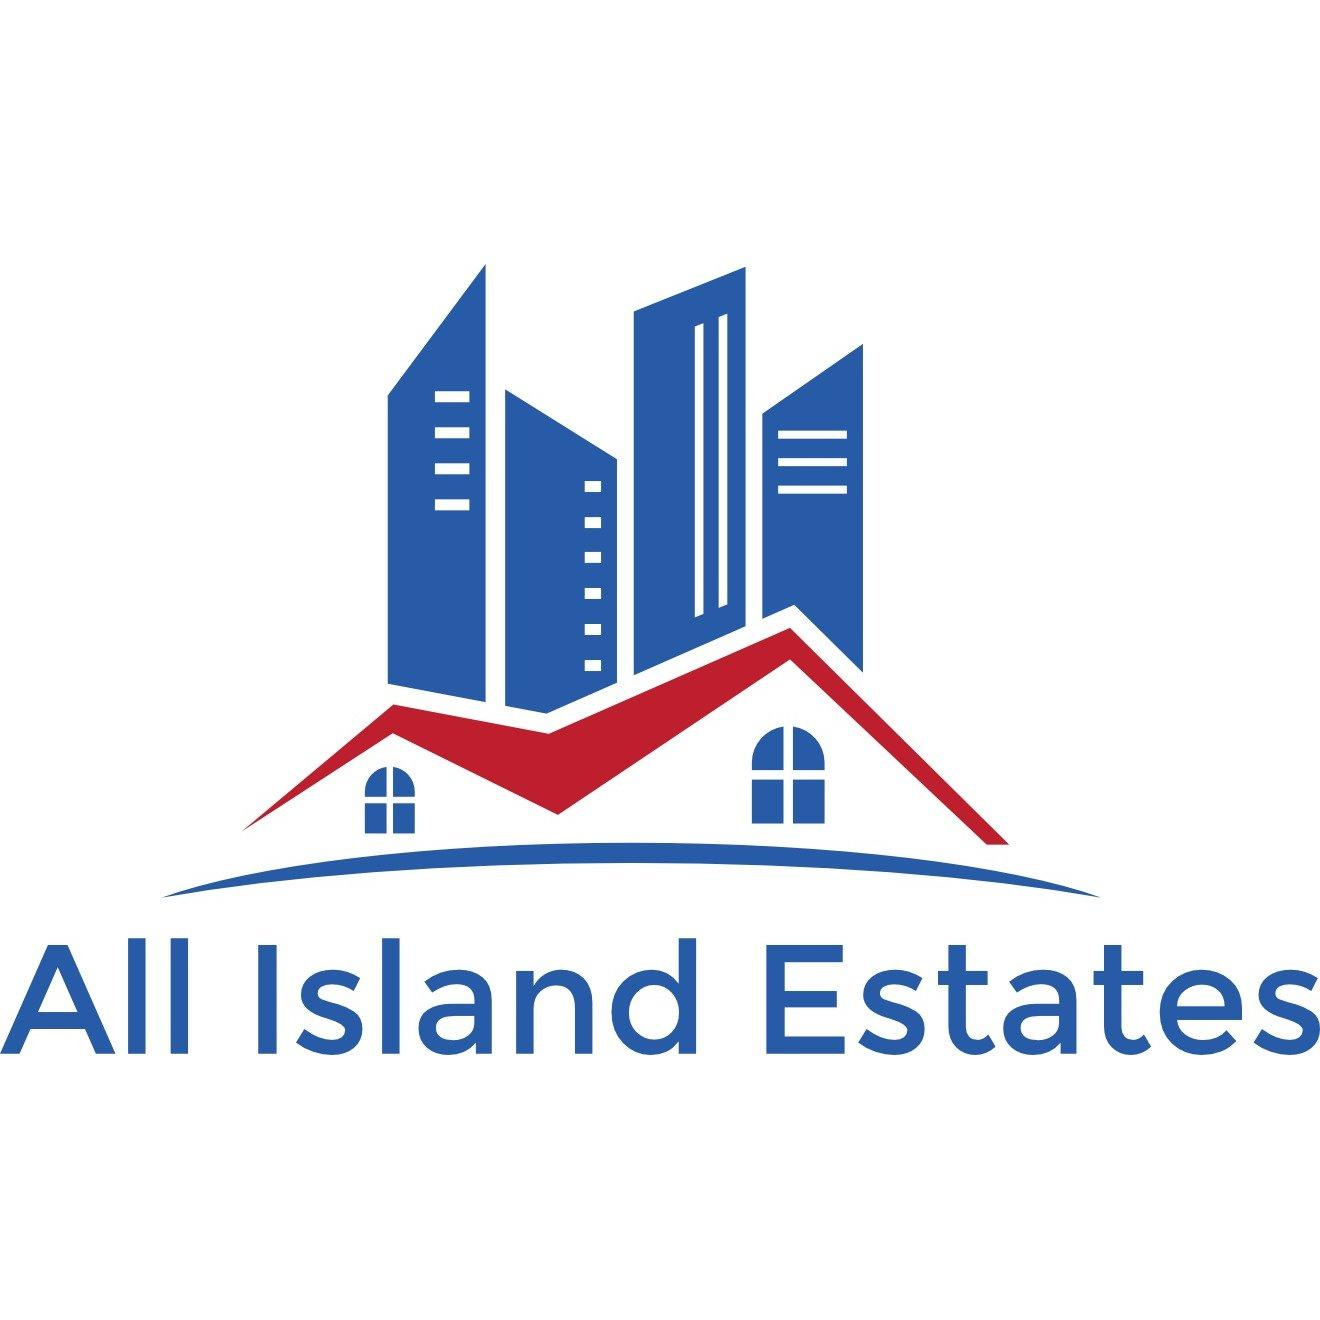 All Island Estates Realty Corp. image 5